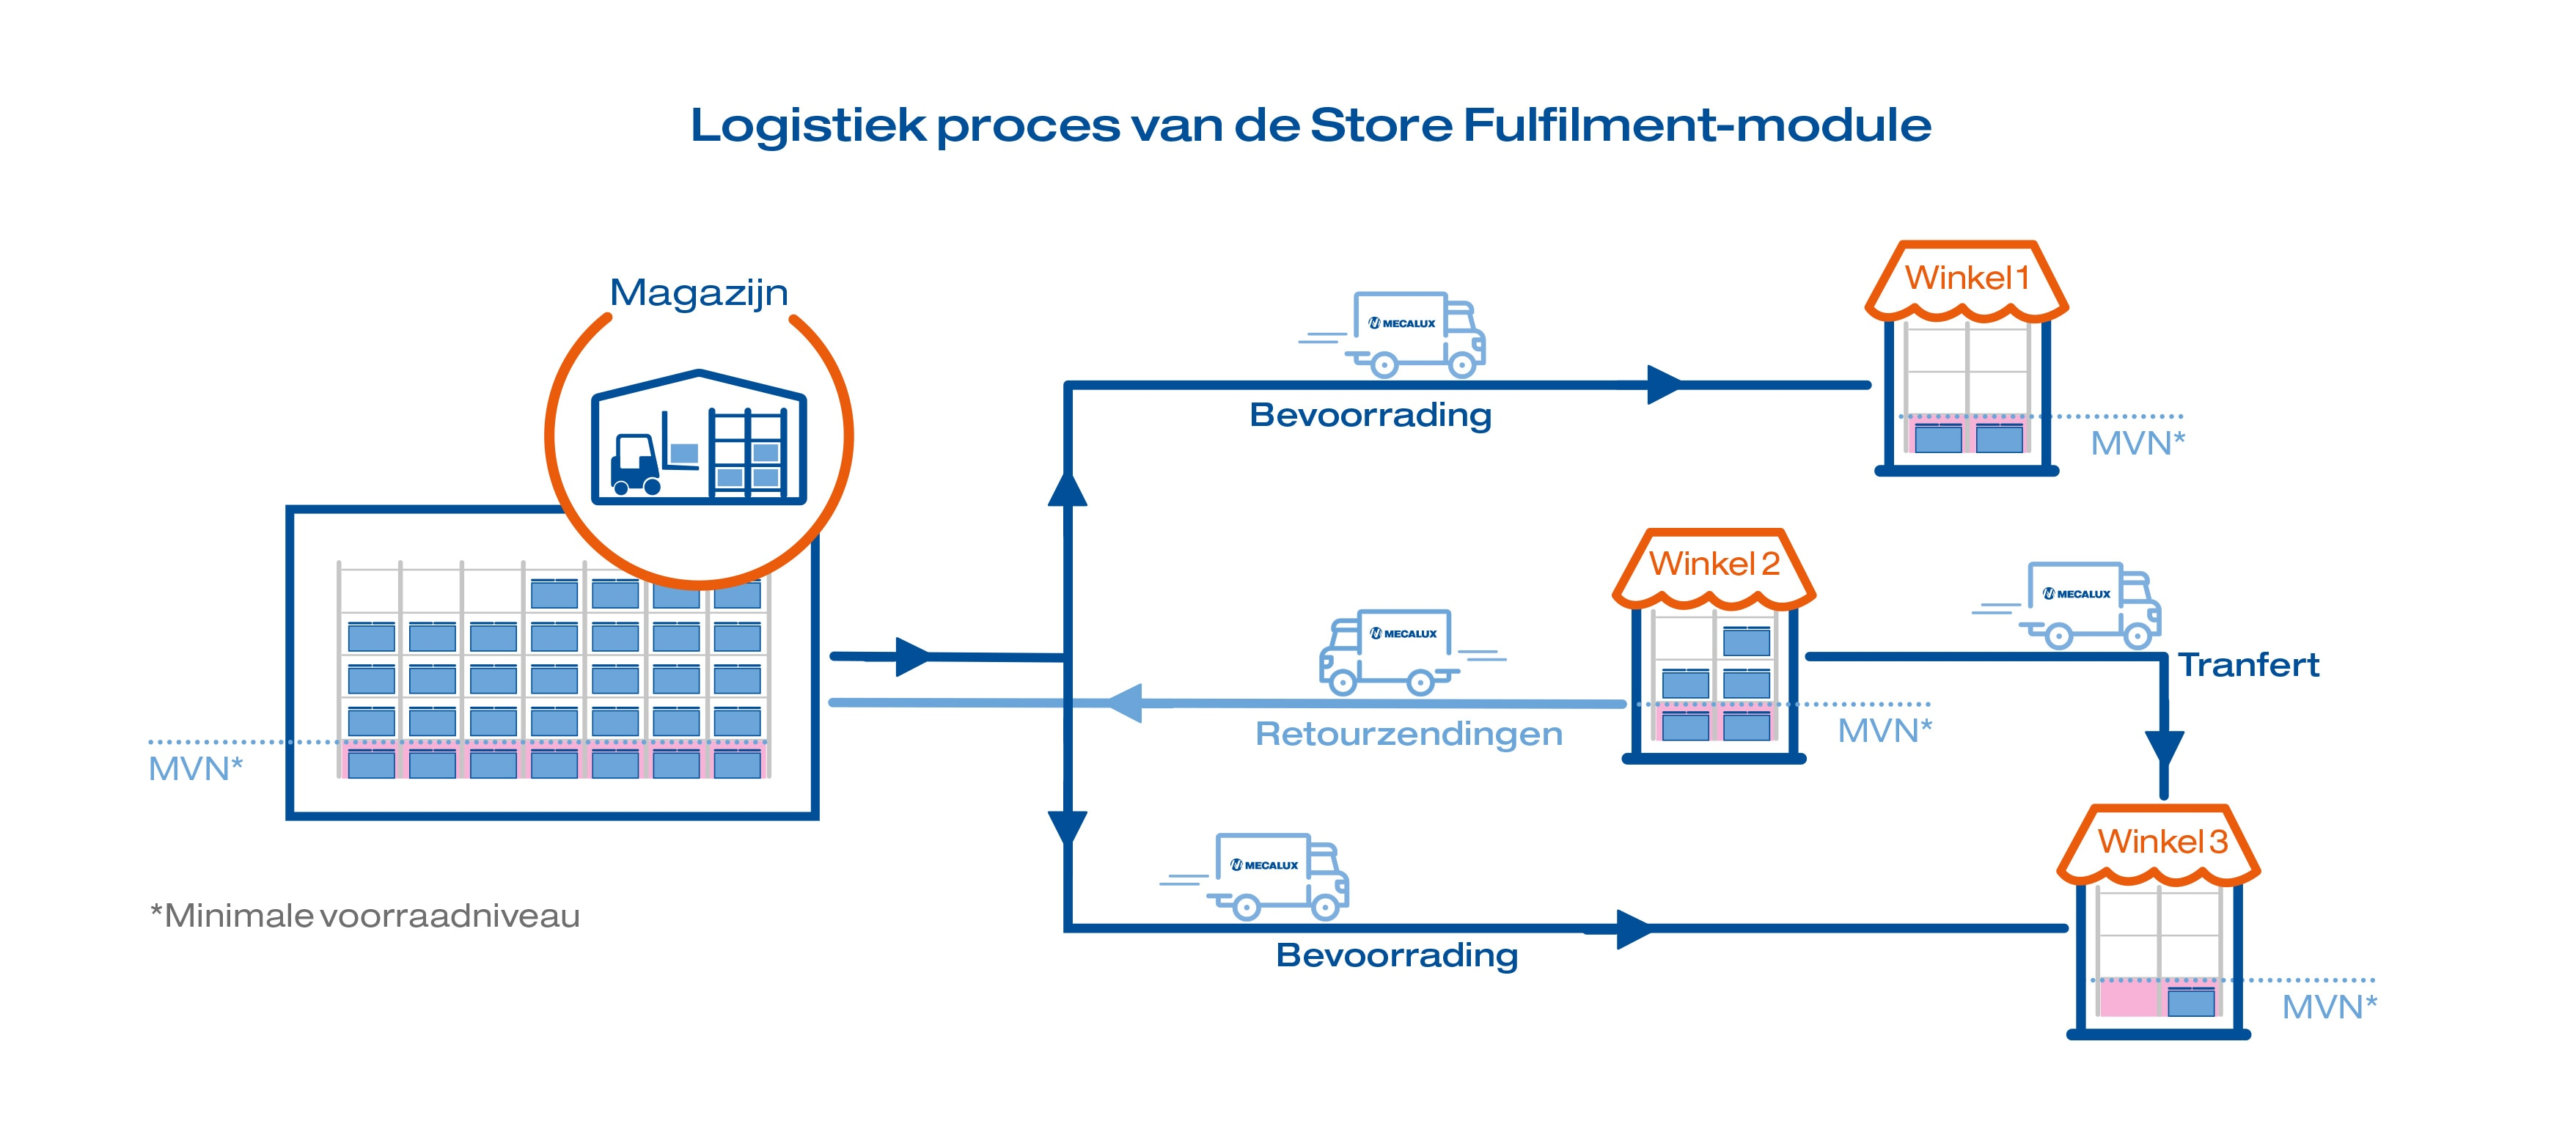 Logistiek proces van de Store Fulfilment-module